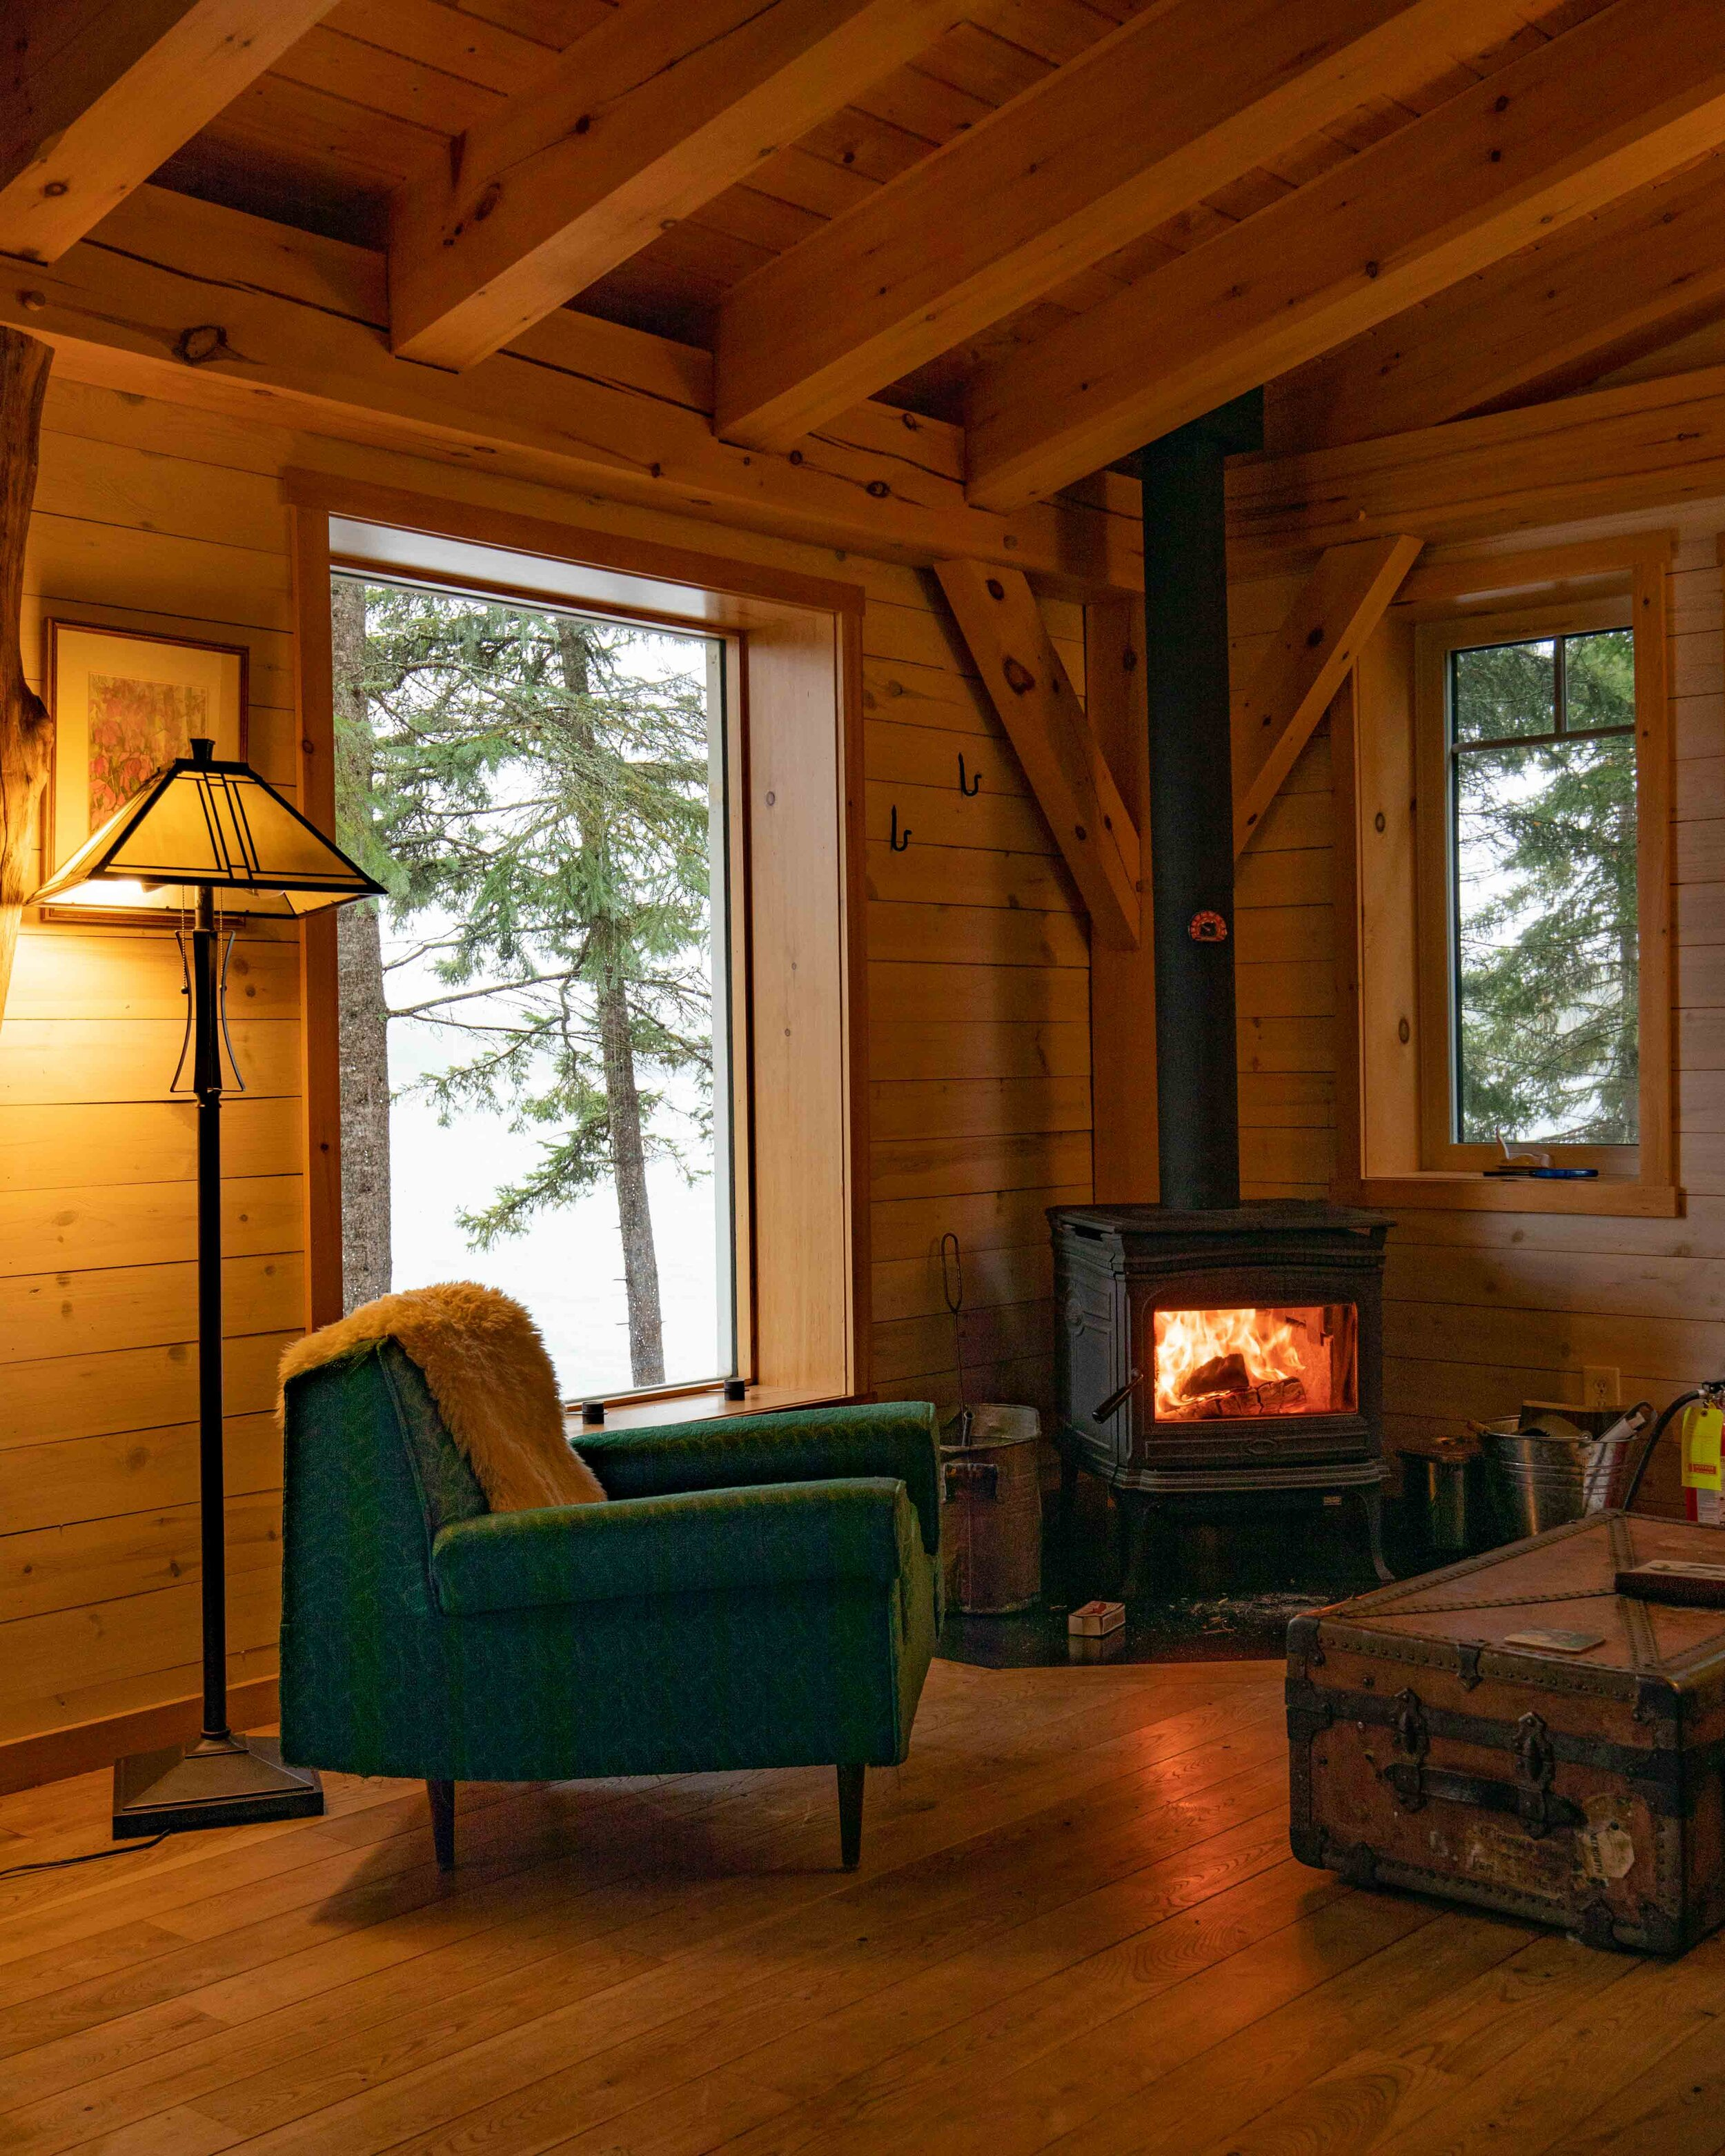 Inside the eco cabins at Falcon Trails Resort